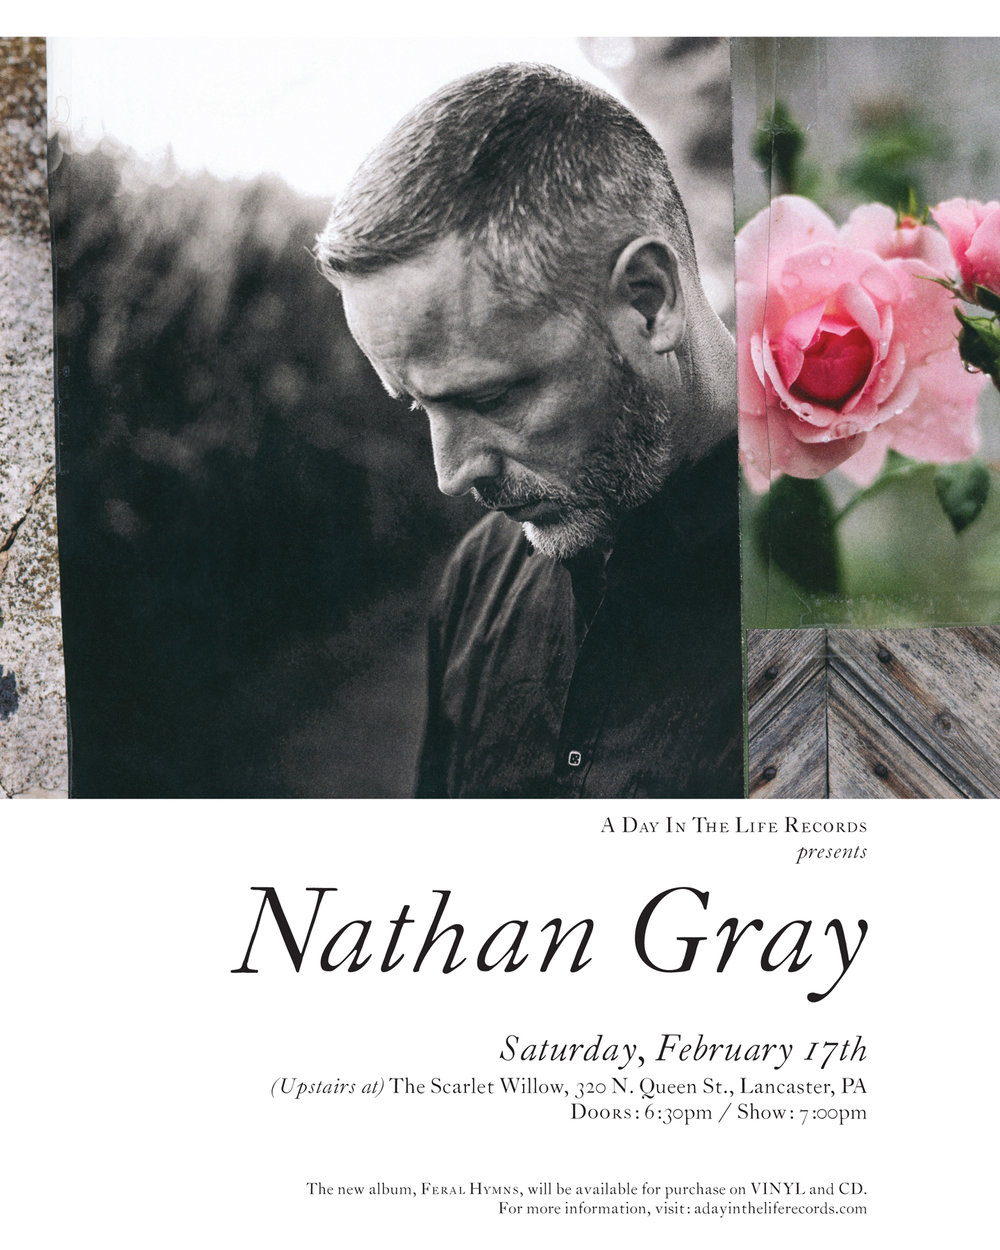 Gray.Nathan-ADITL_Graphic-1_20x25.jpg